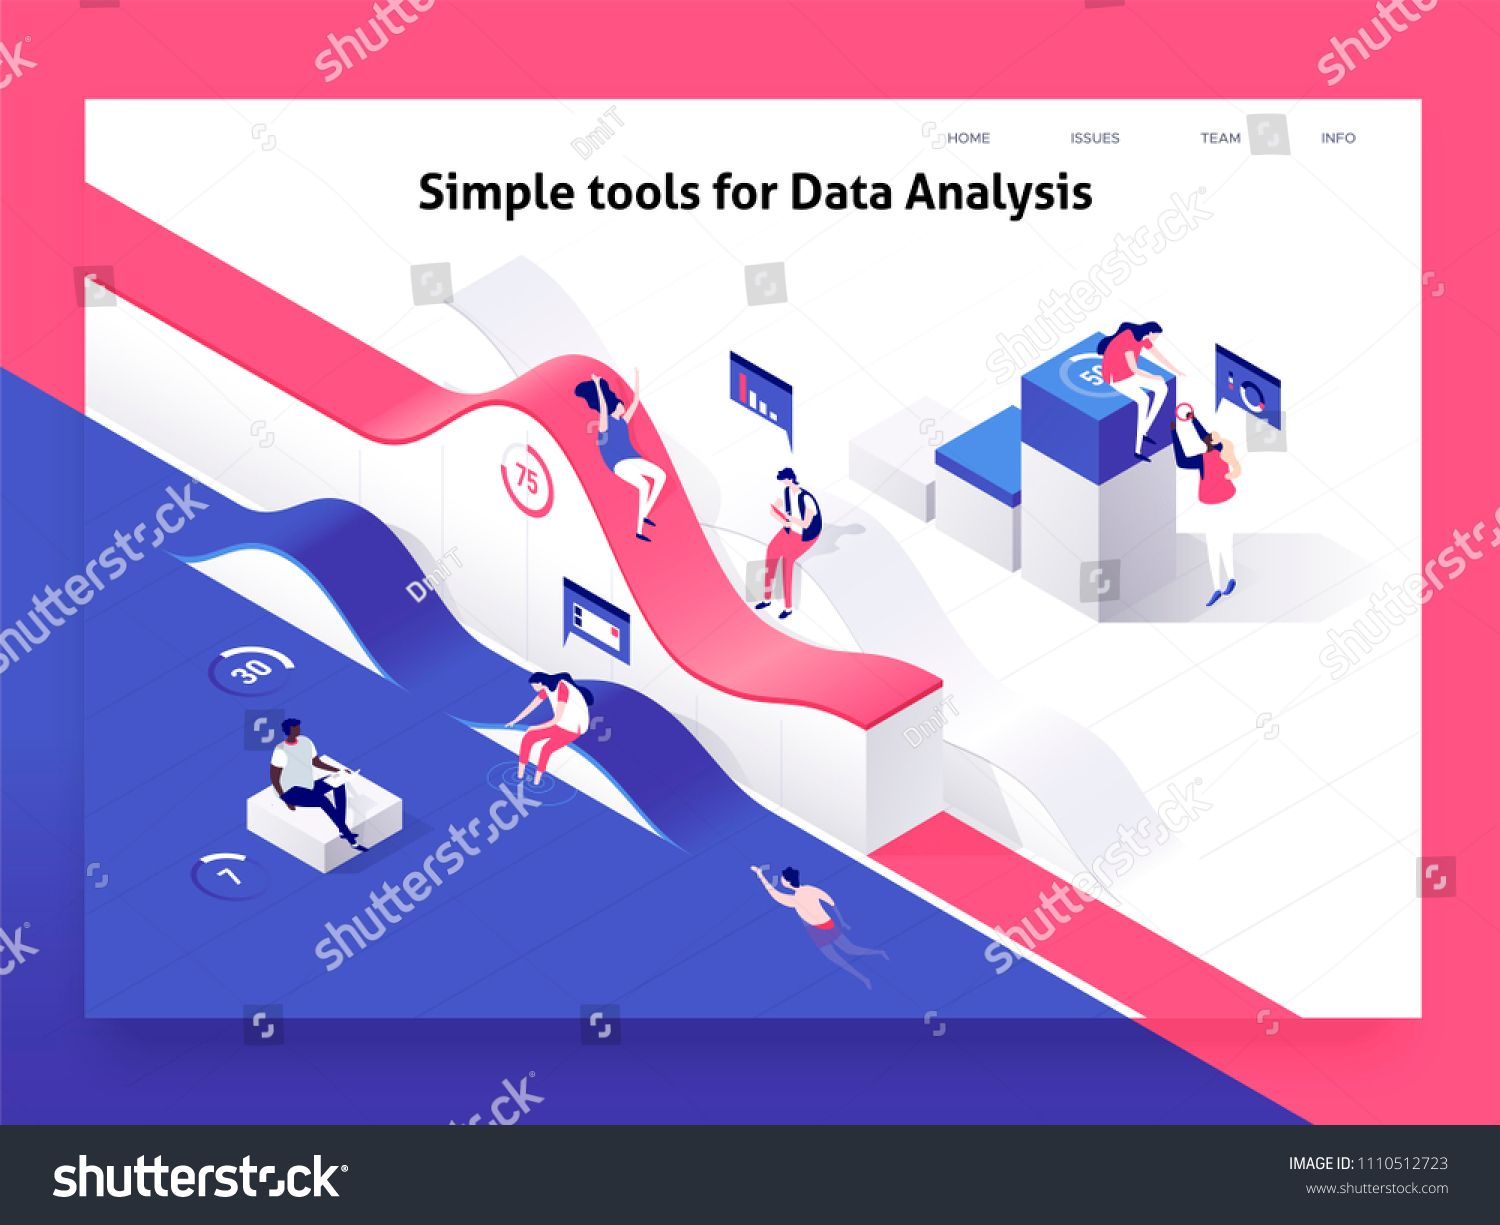 People interacting with charts and analysing statistics and data. Landing page template. 3d isometric vector illustration. #Ad , #AFFILIATE, #analysing#statistics#data#People